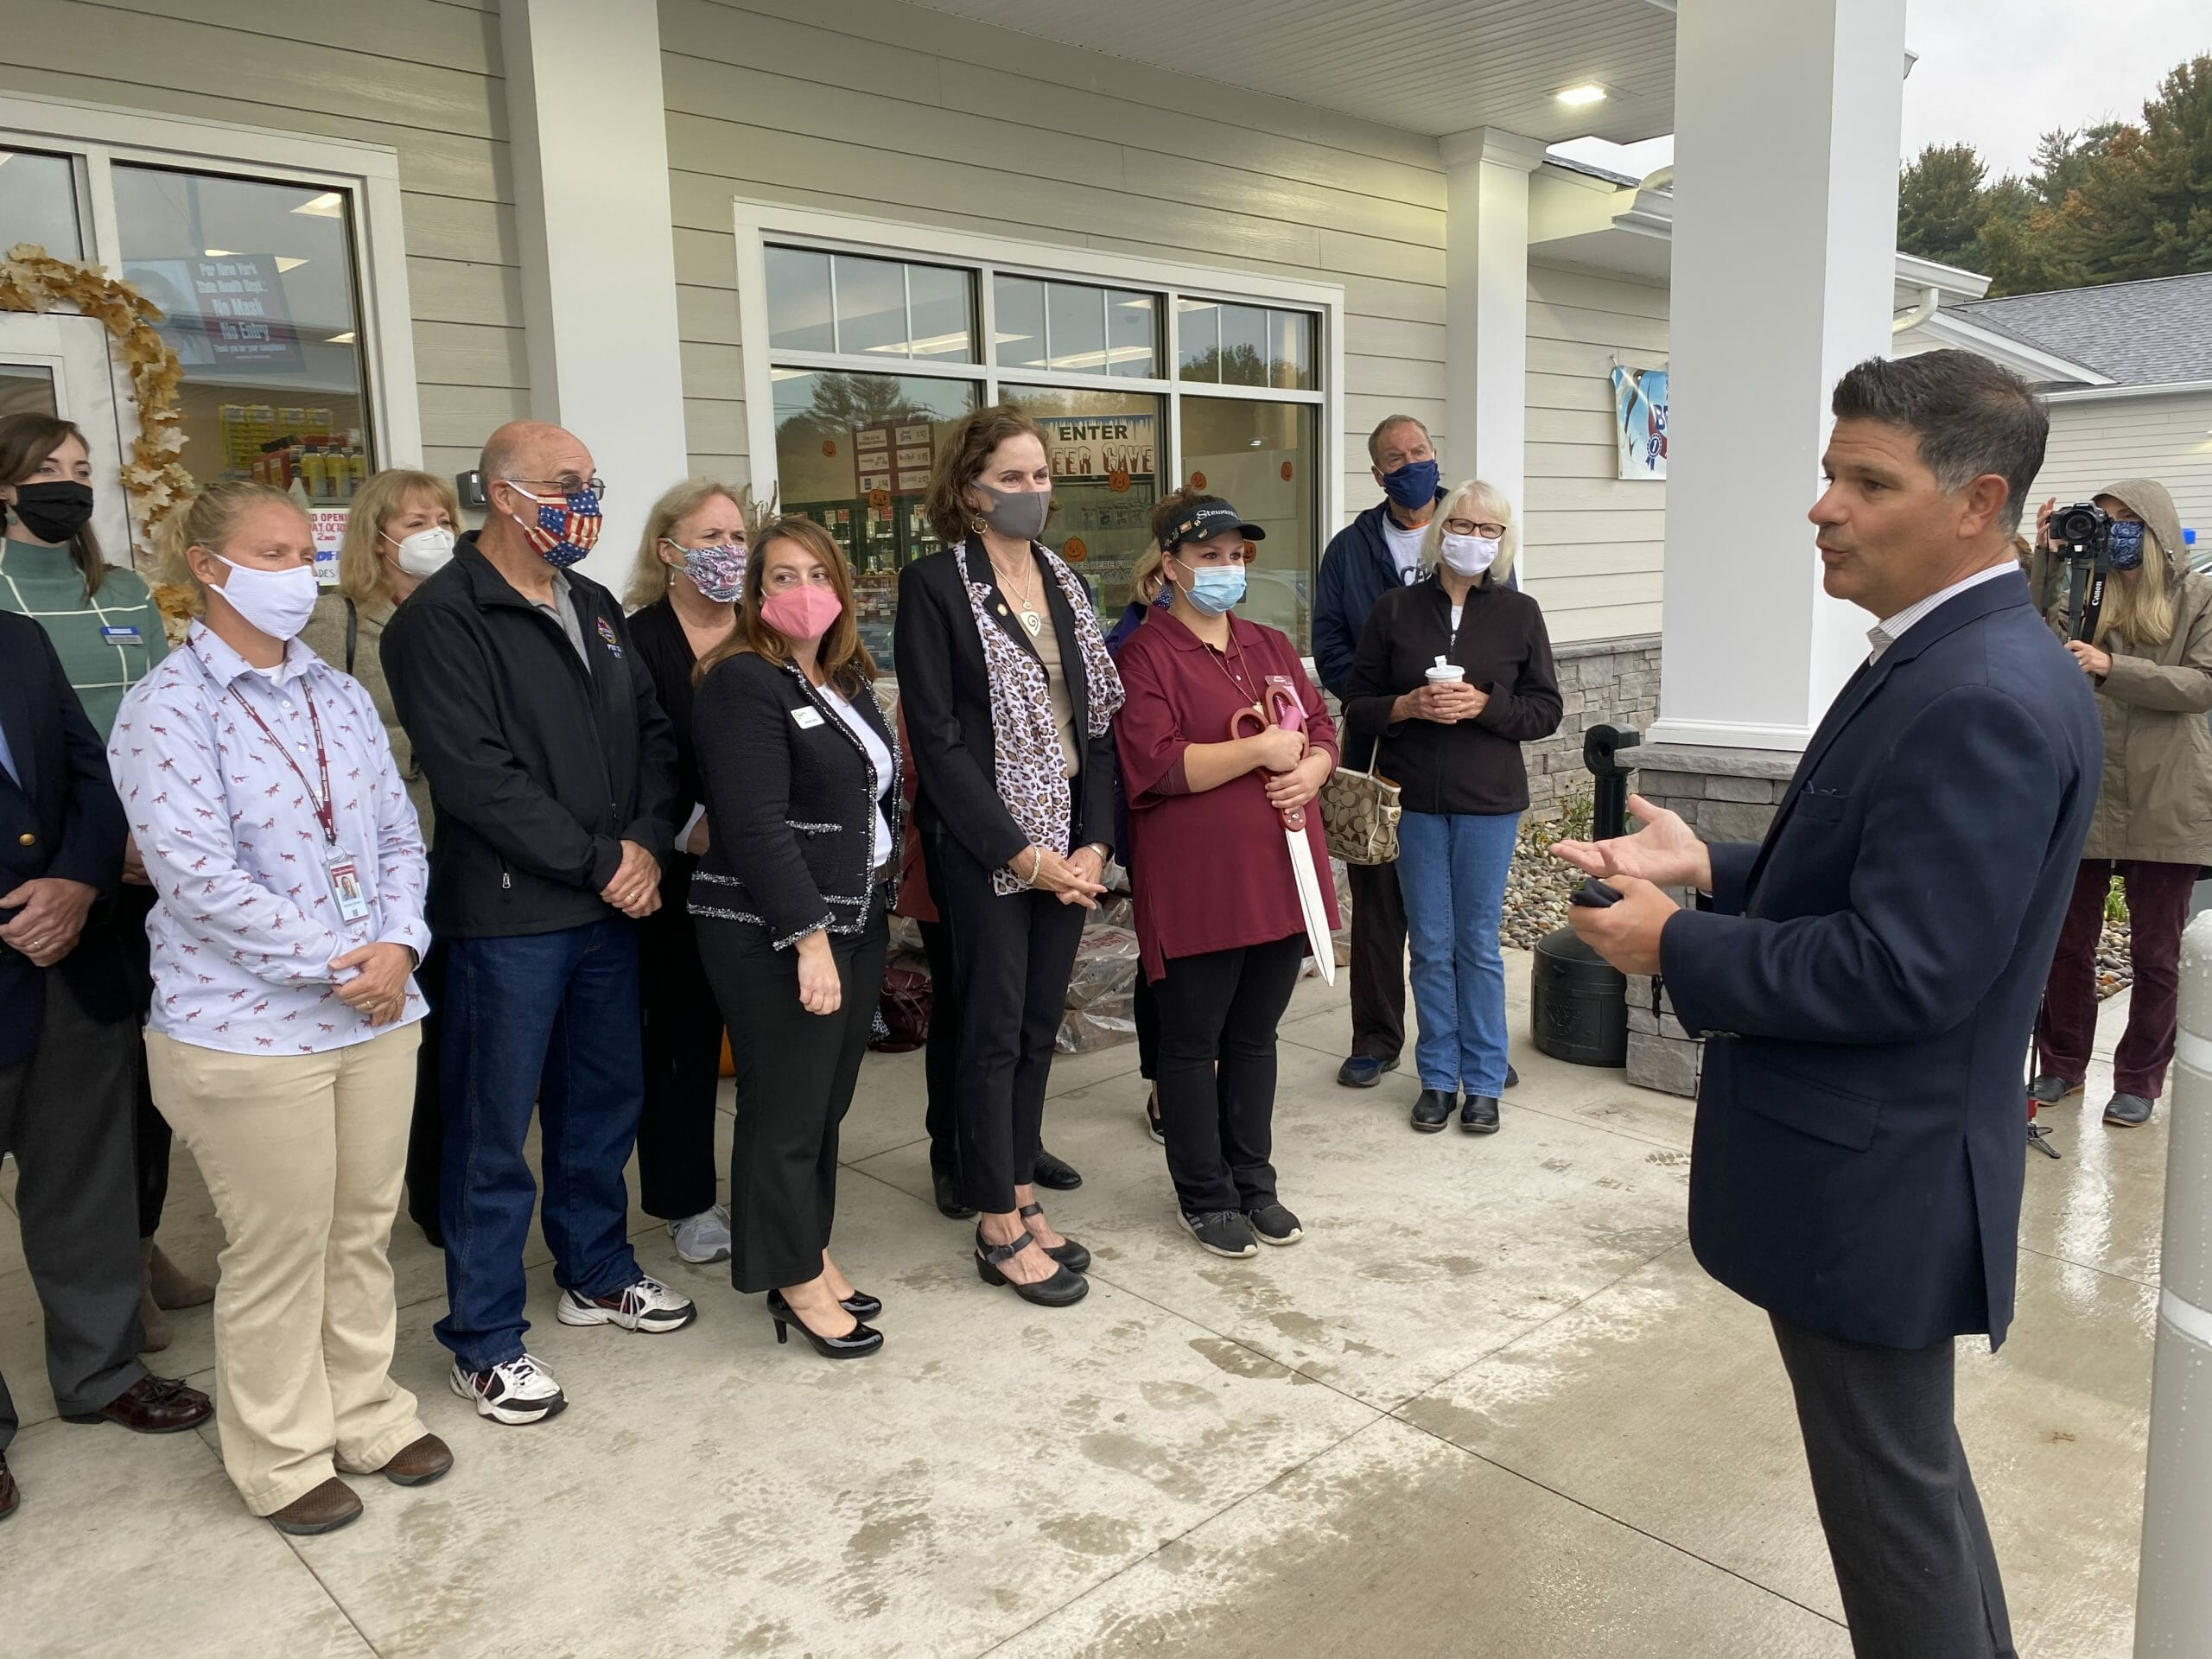 council man speaking in front of new karner shop